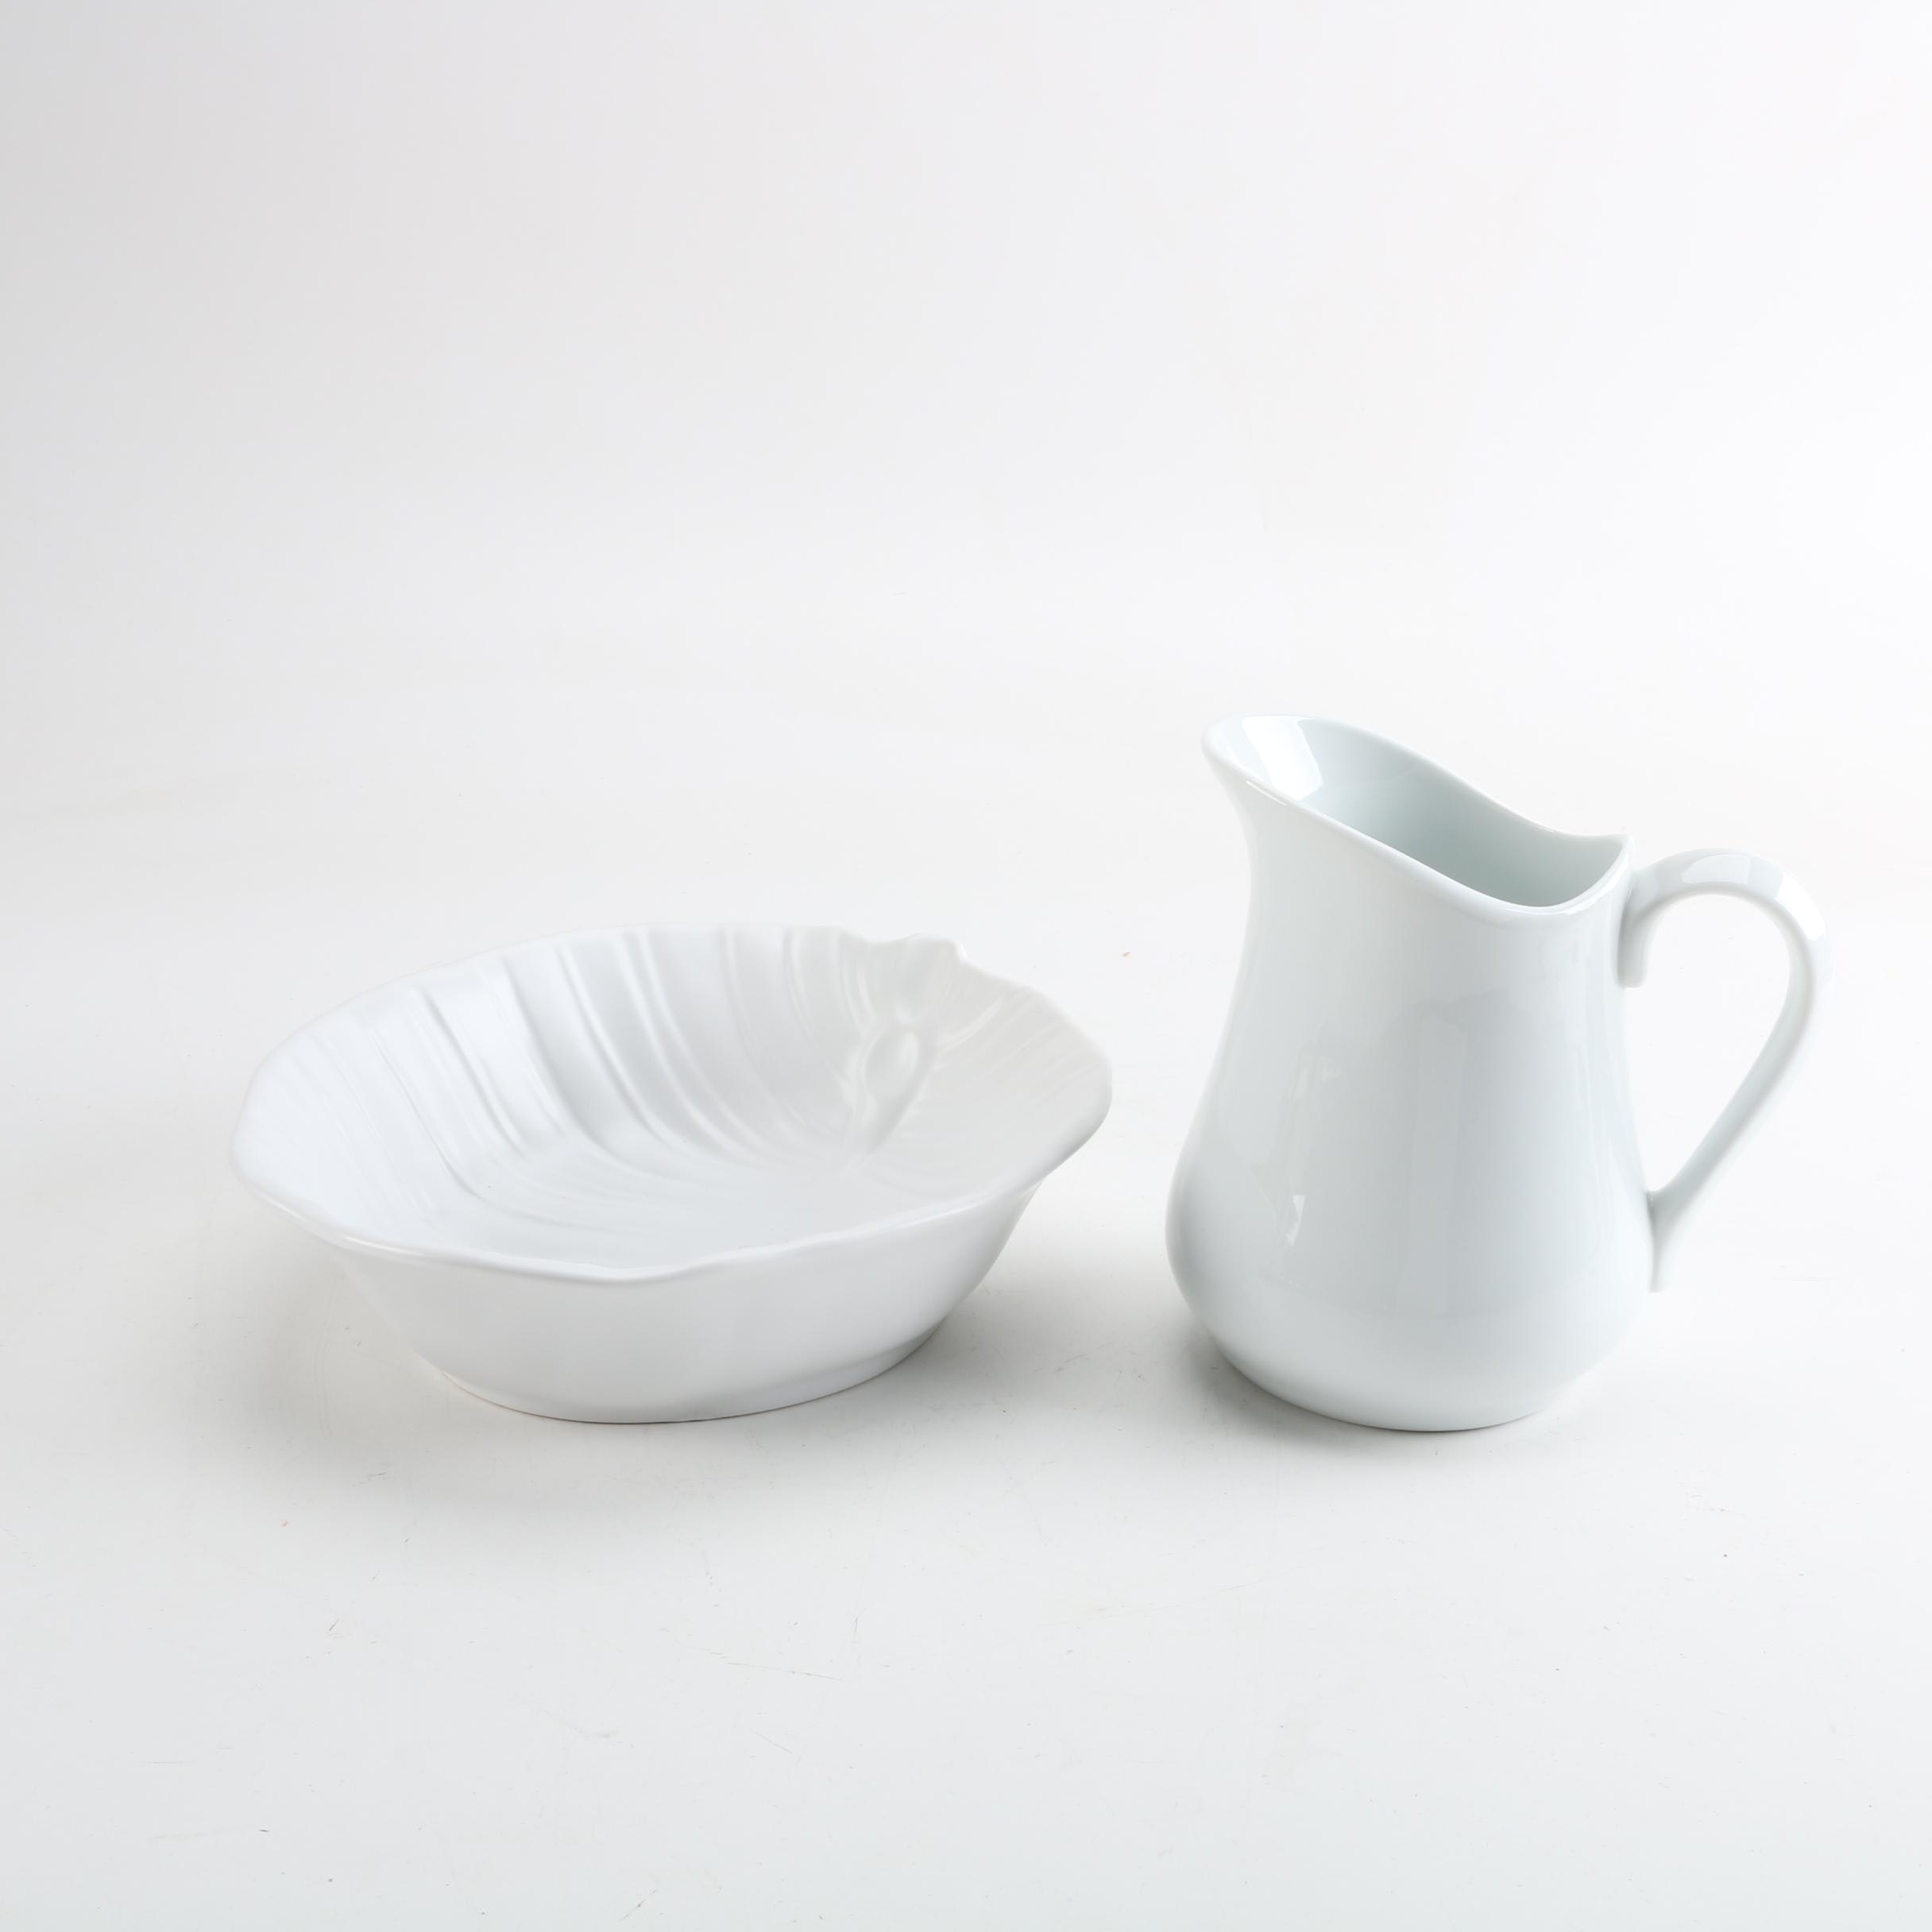 Roscher & Co. Ceramic Bowl and Cordon Bleu Ceramic Pitcher